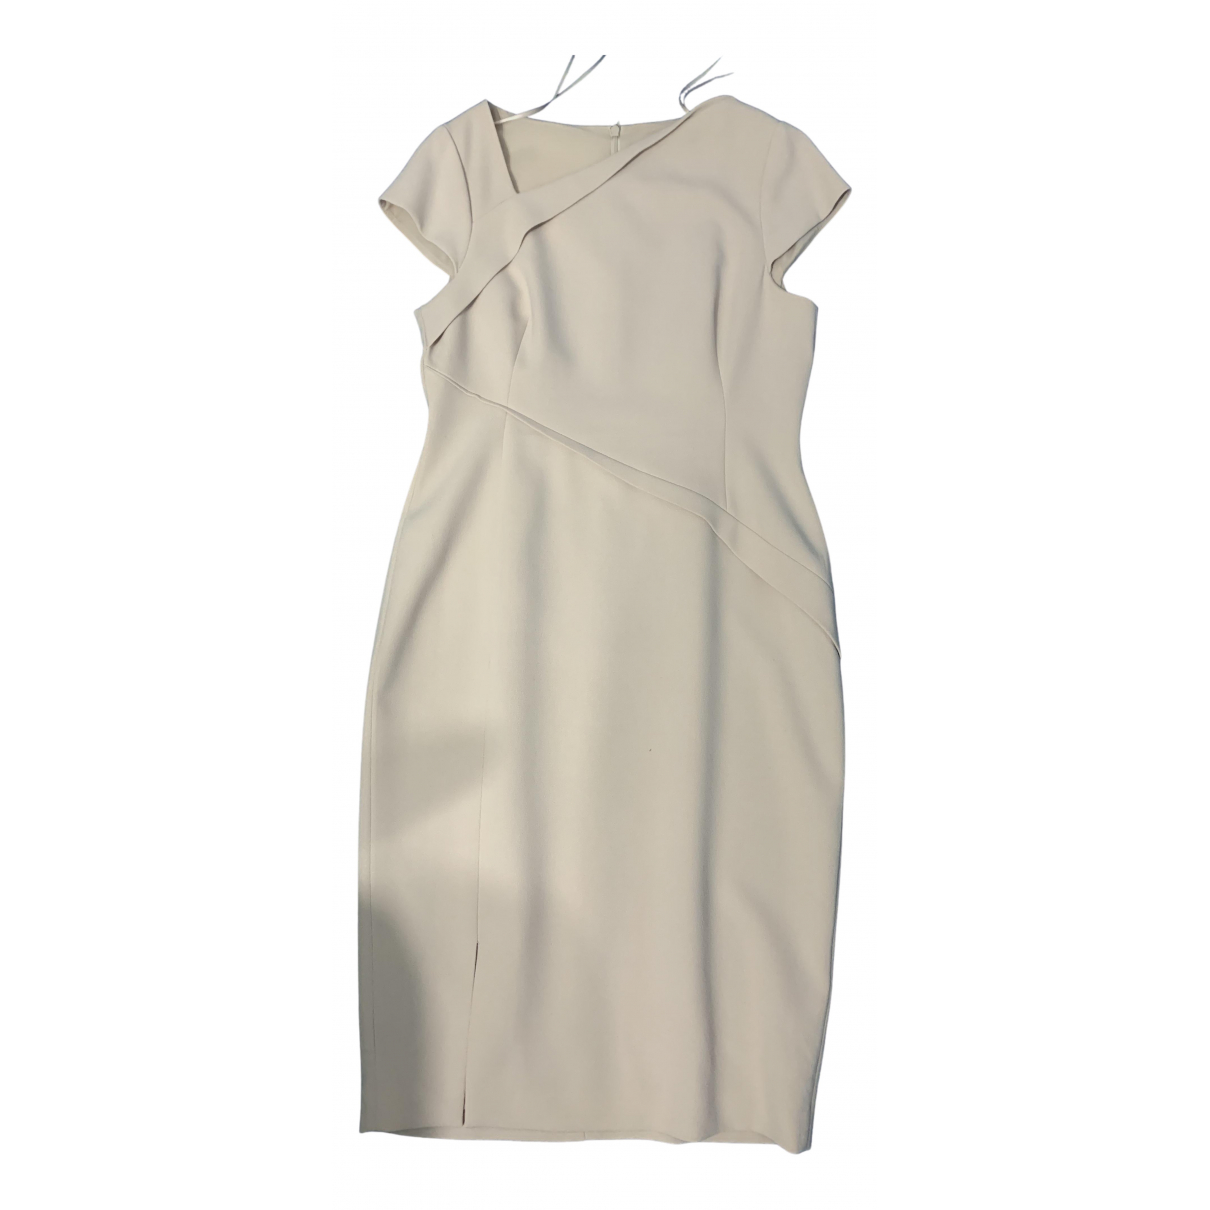 Lk Bennett N Beige dress for Women 14 UK